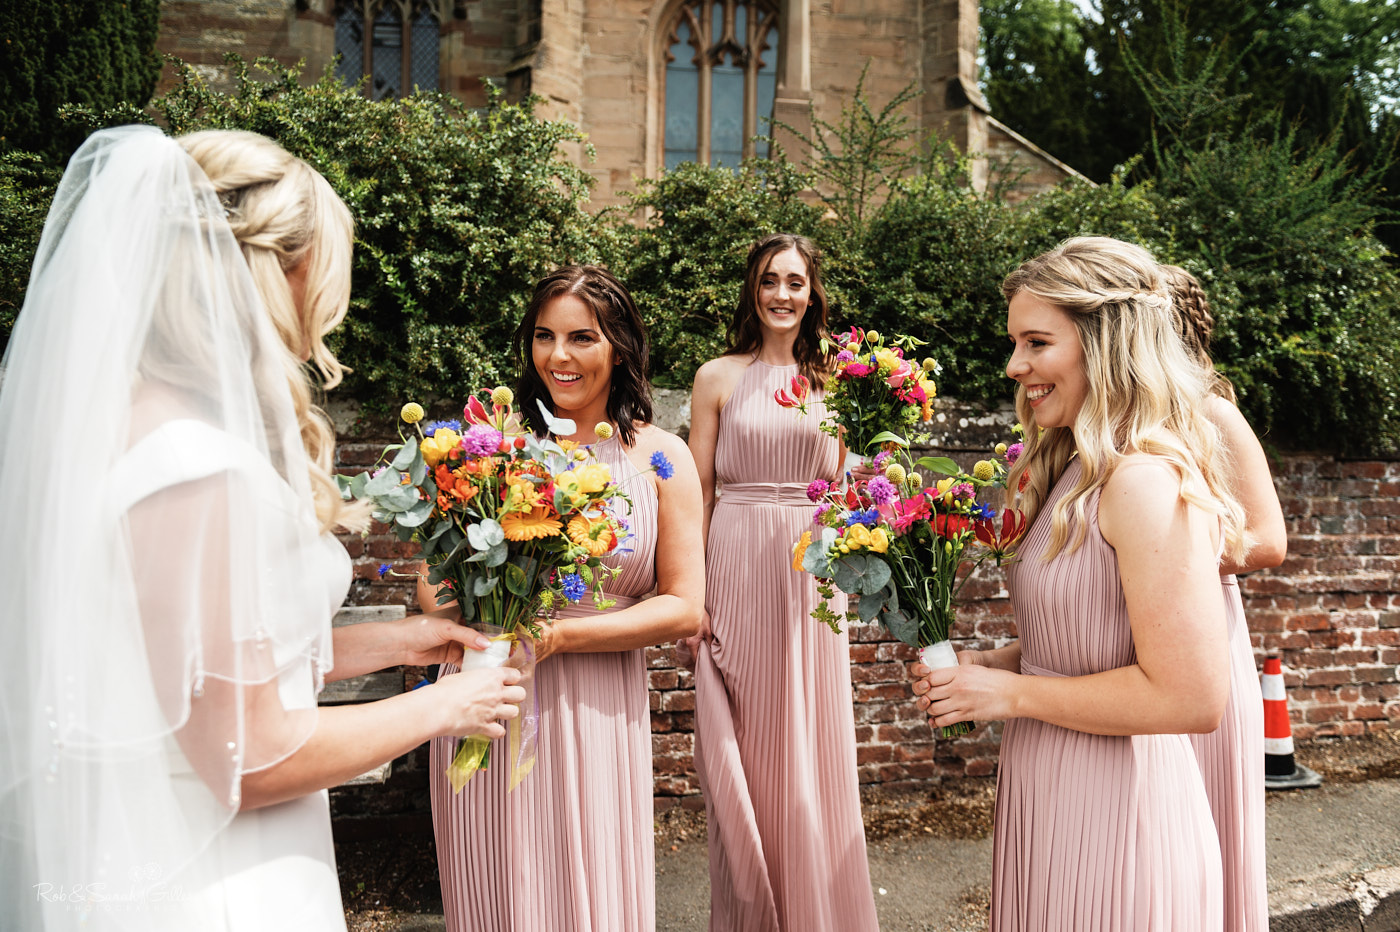 Bride and bridesmaids at St Leonard's church in Clent